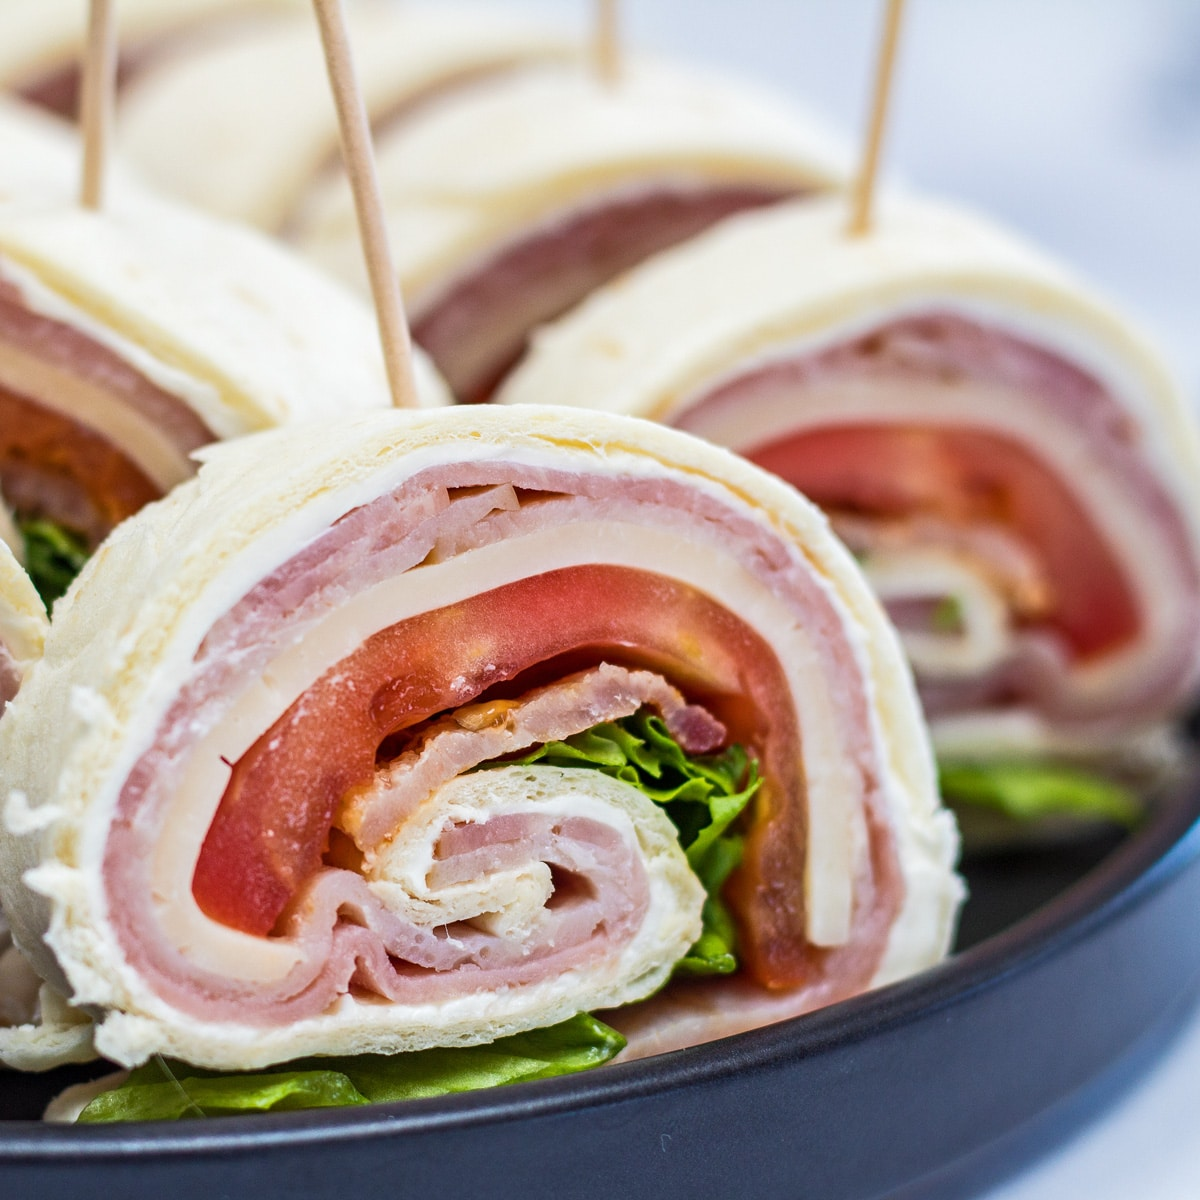 Club pinwheel sandwiches sliced and served on black plate.